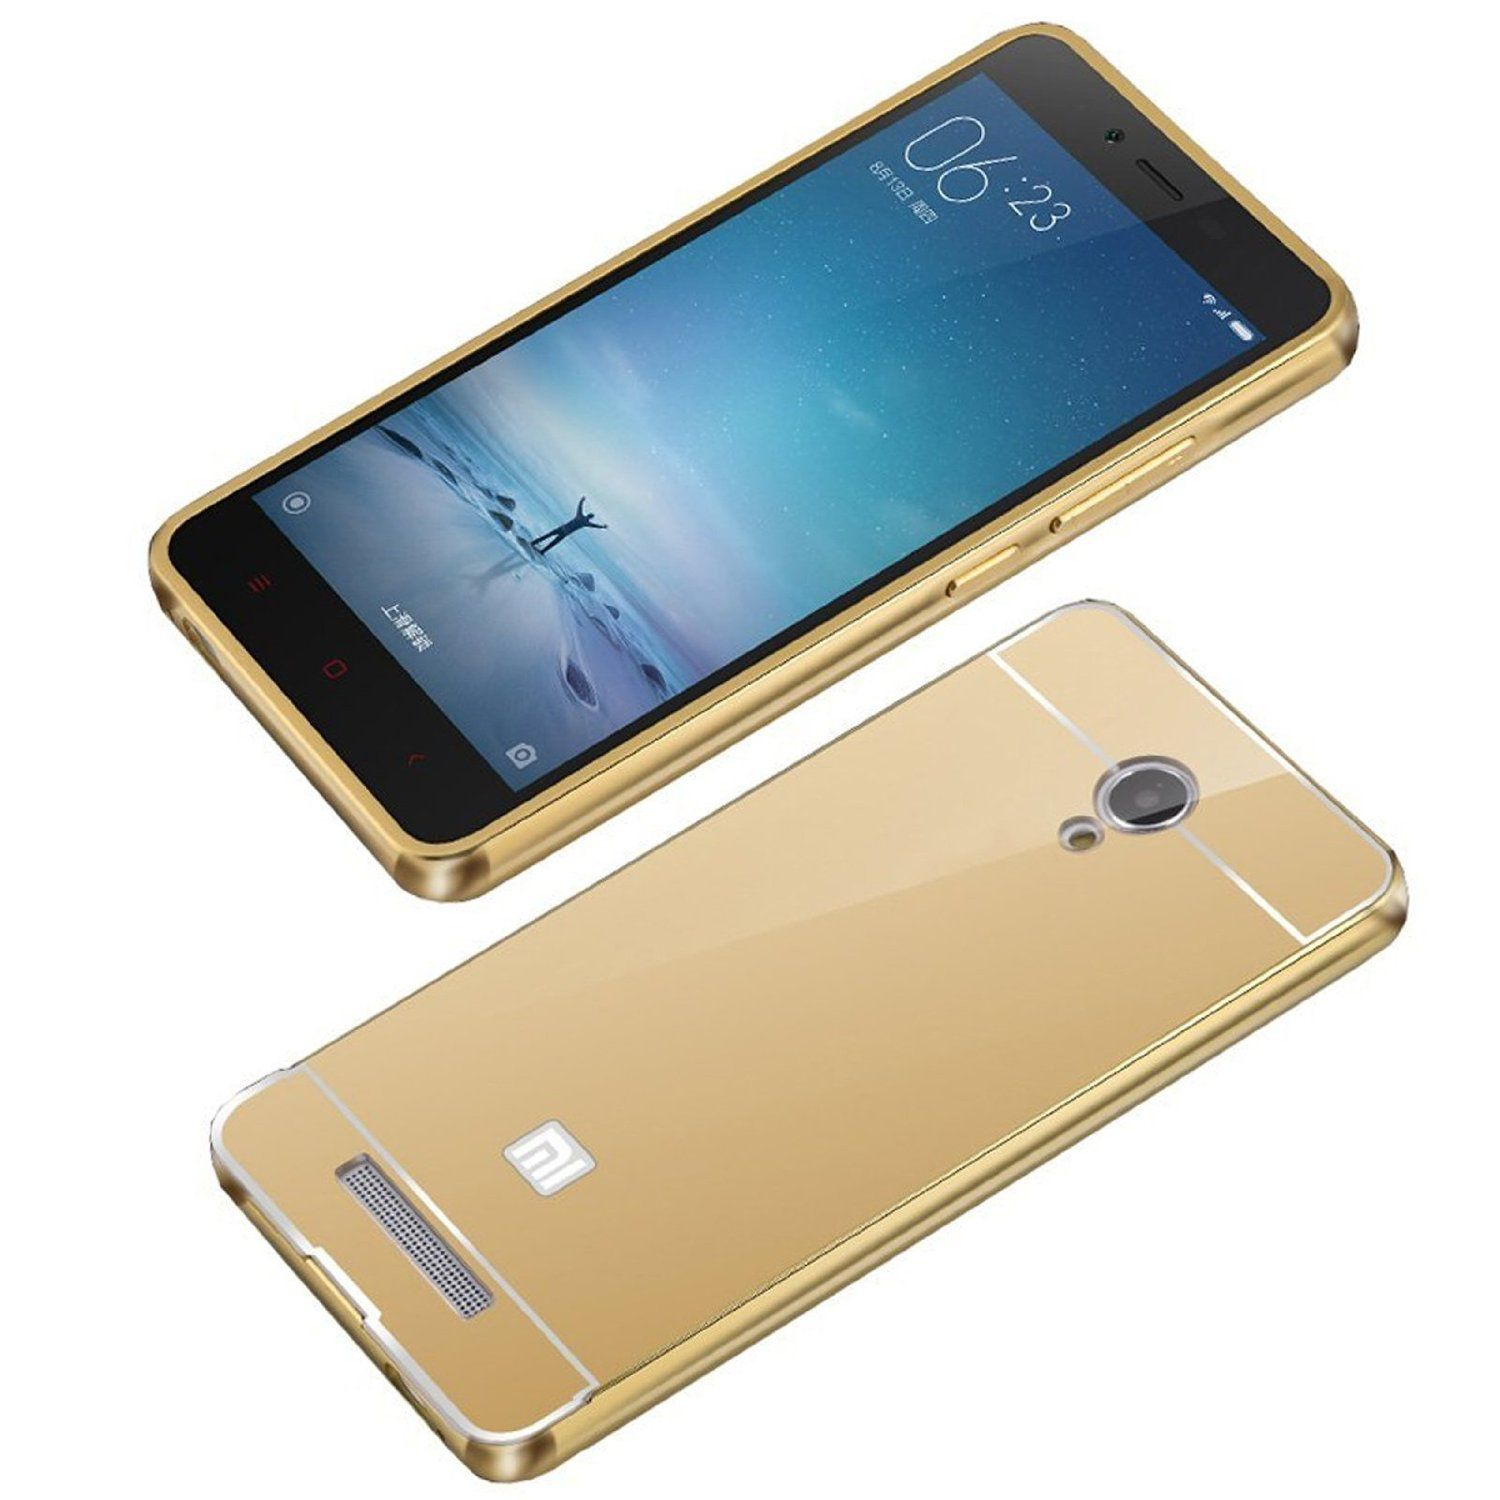 Style Crome Metal Bumper + Acrylic Mirror Back Cover Case For Redmi Note 3  Gold + Flexible Portable Thumb OK Stand